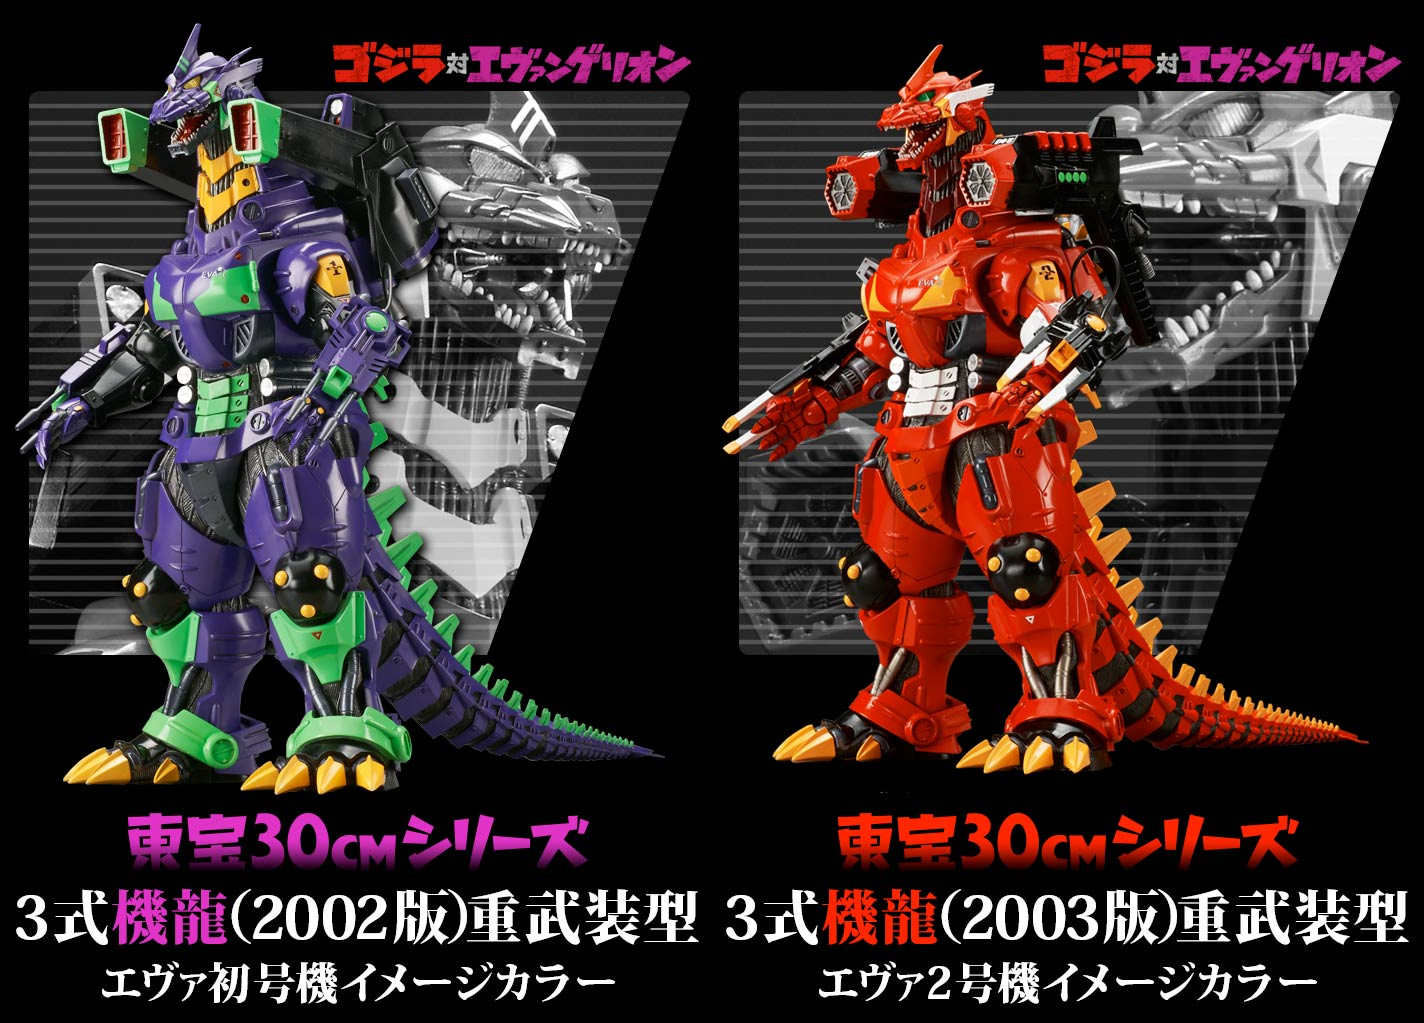 Godzilla vs. Evangelion Kiryu 2002 and 2003 in Eva colors.